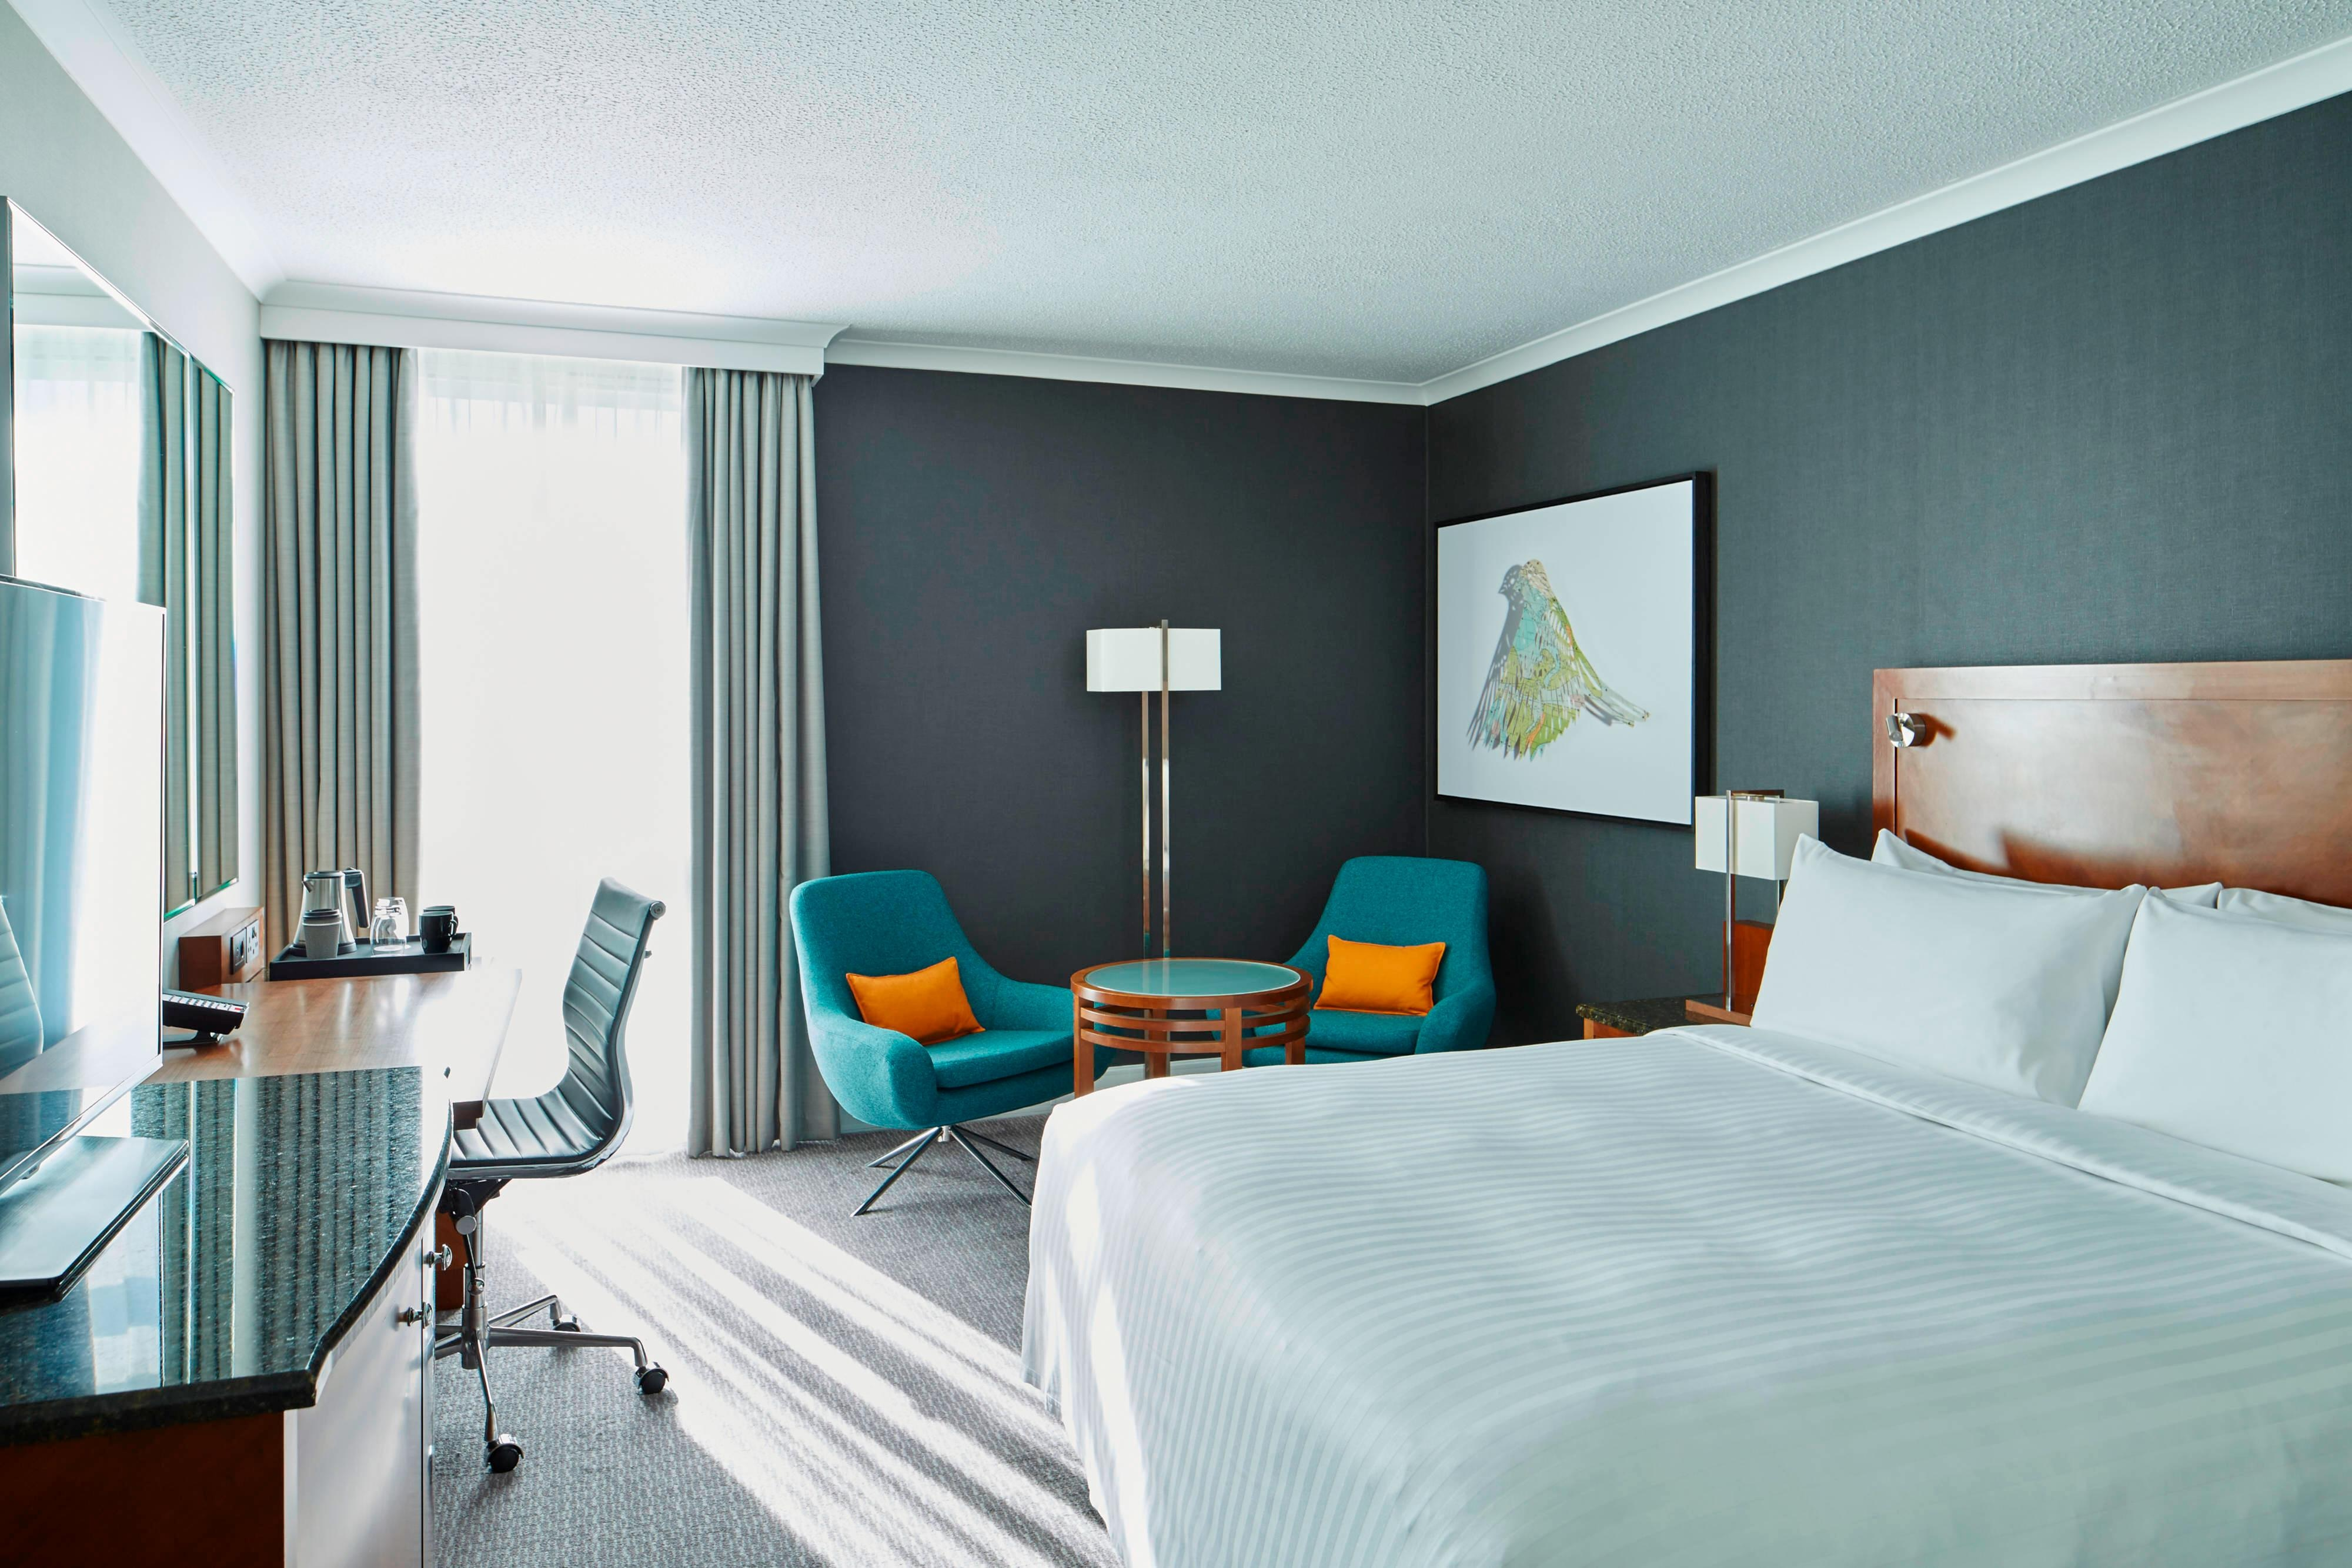 Day Use Hotel Rooms At Heathrow Airport